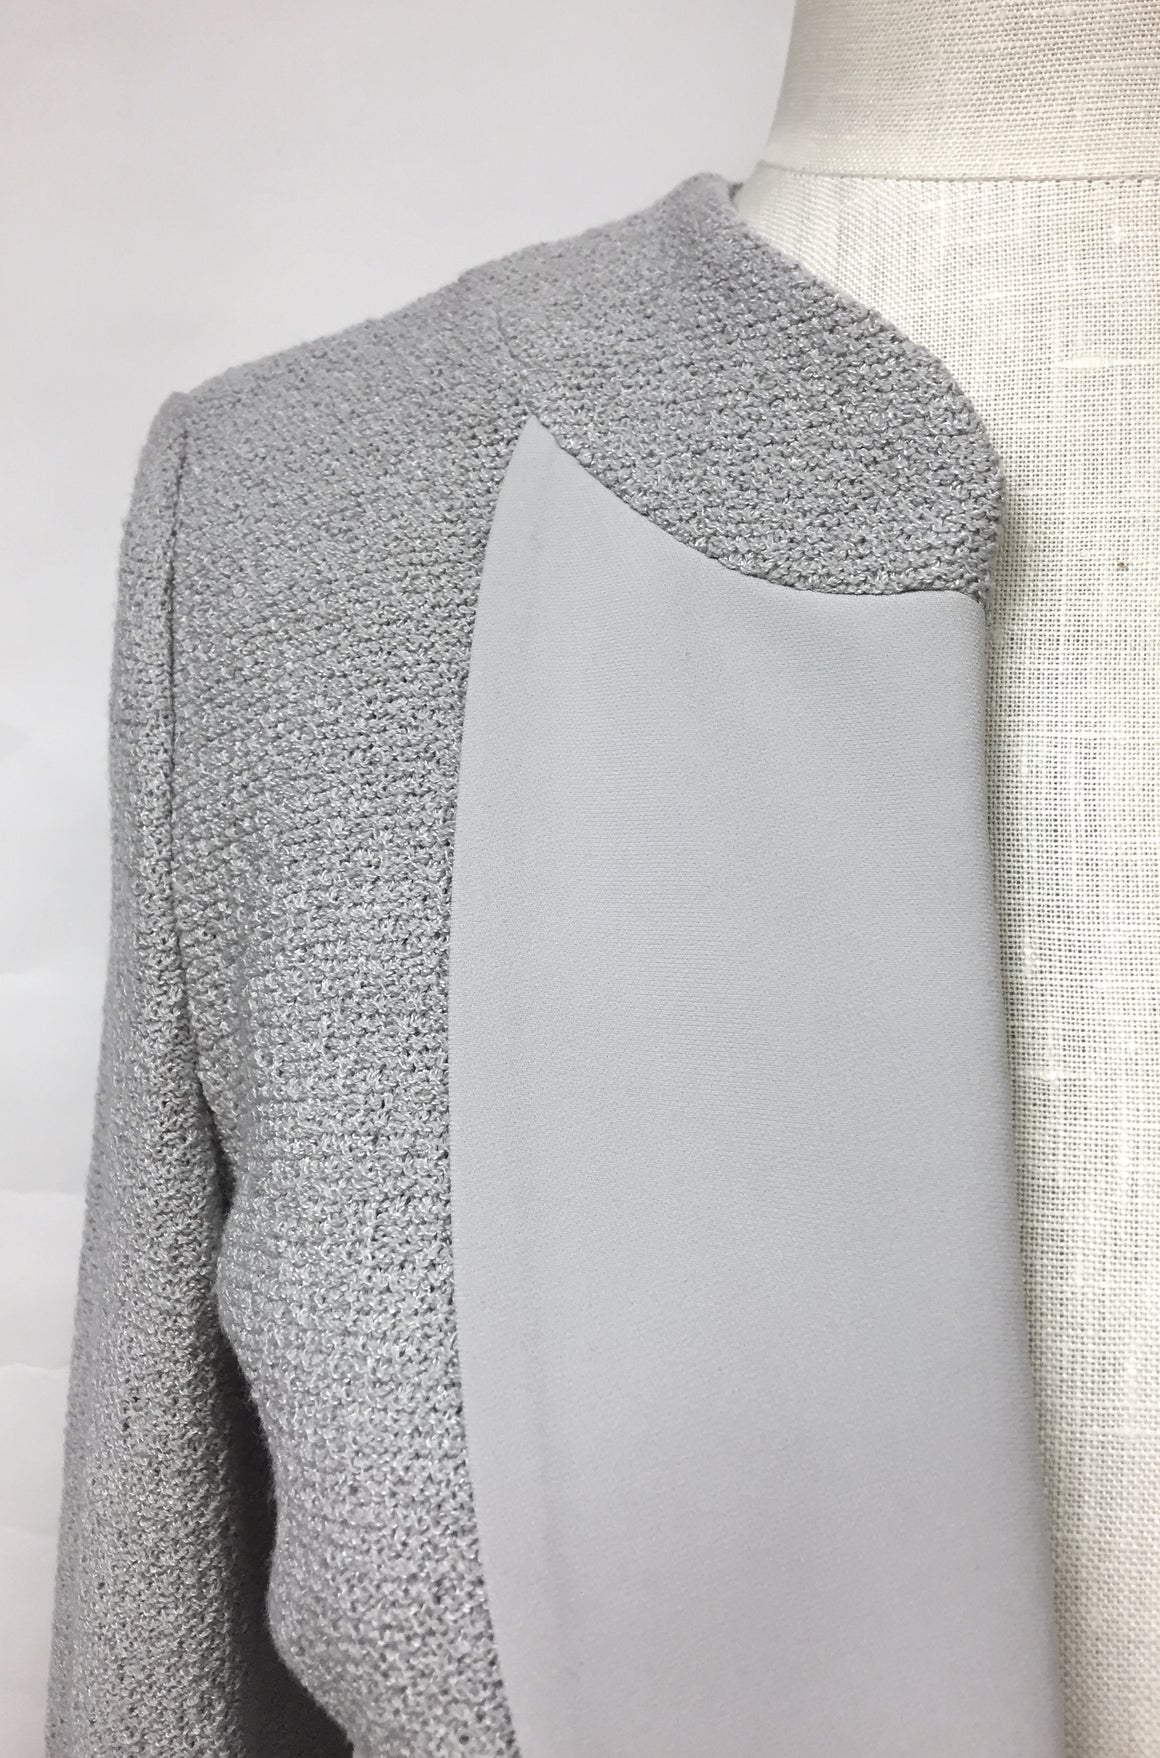 ST. JOHN New with Tags Pearl-Gray Santana-Knit Dress Jacket  Size: 6